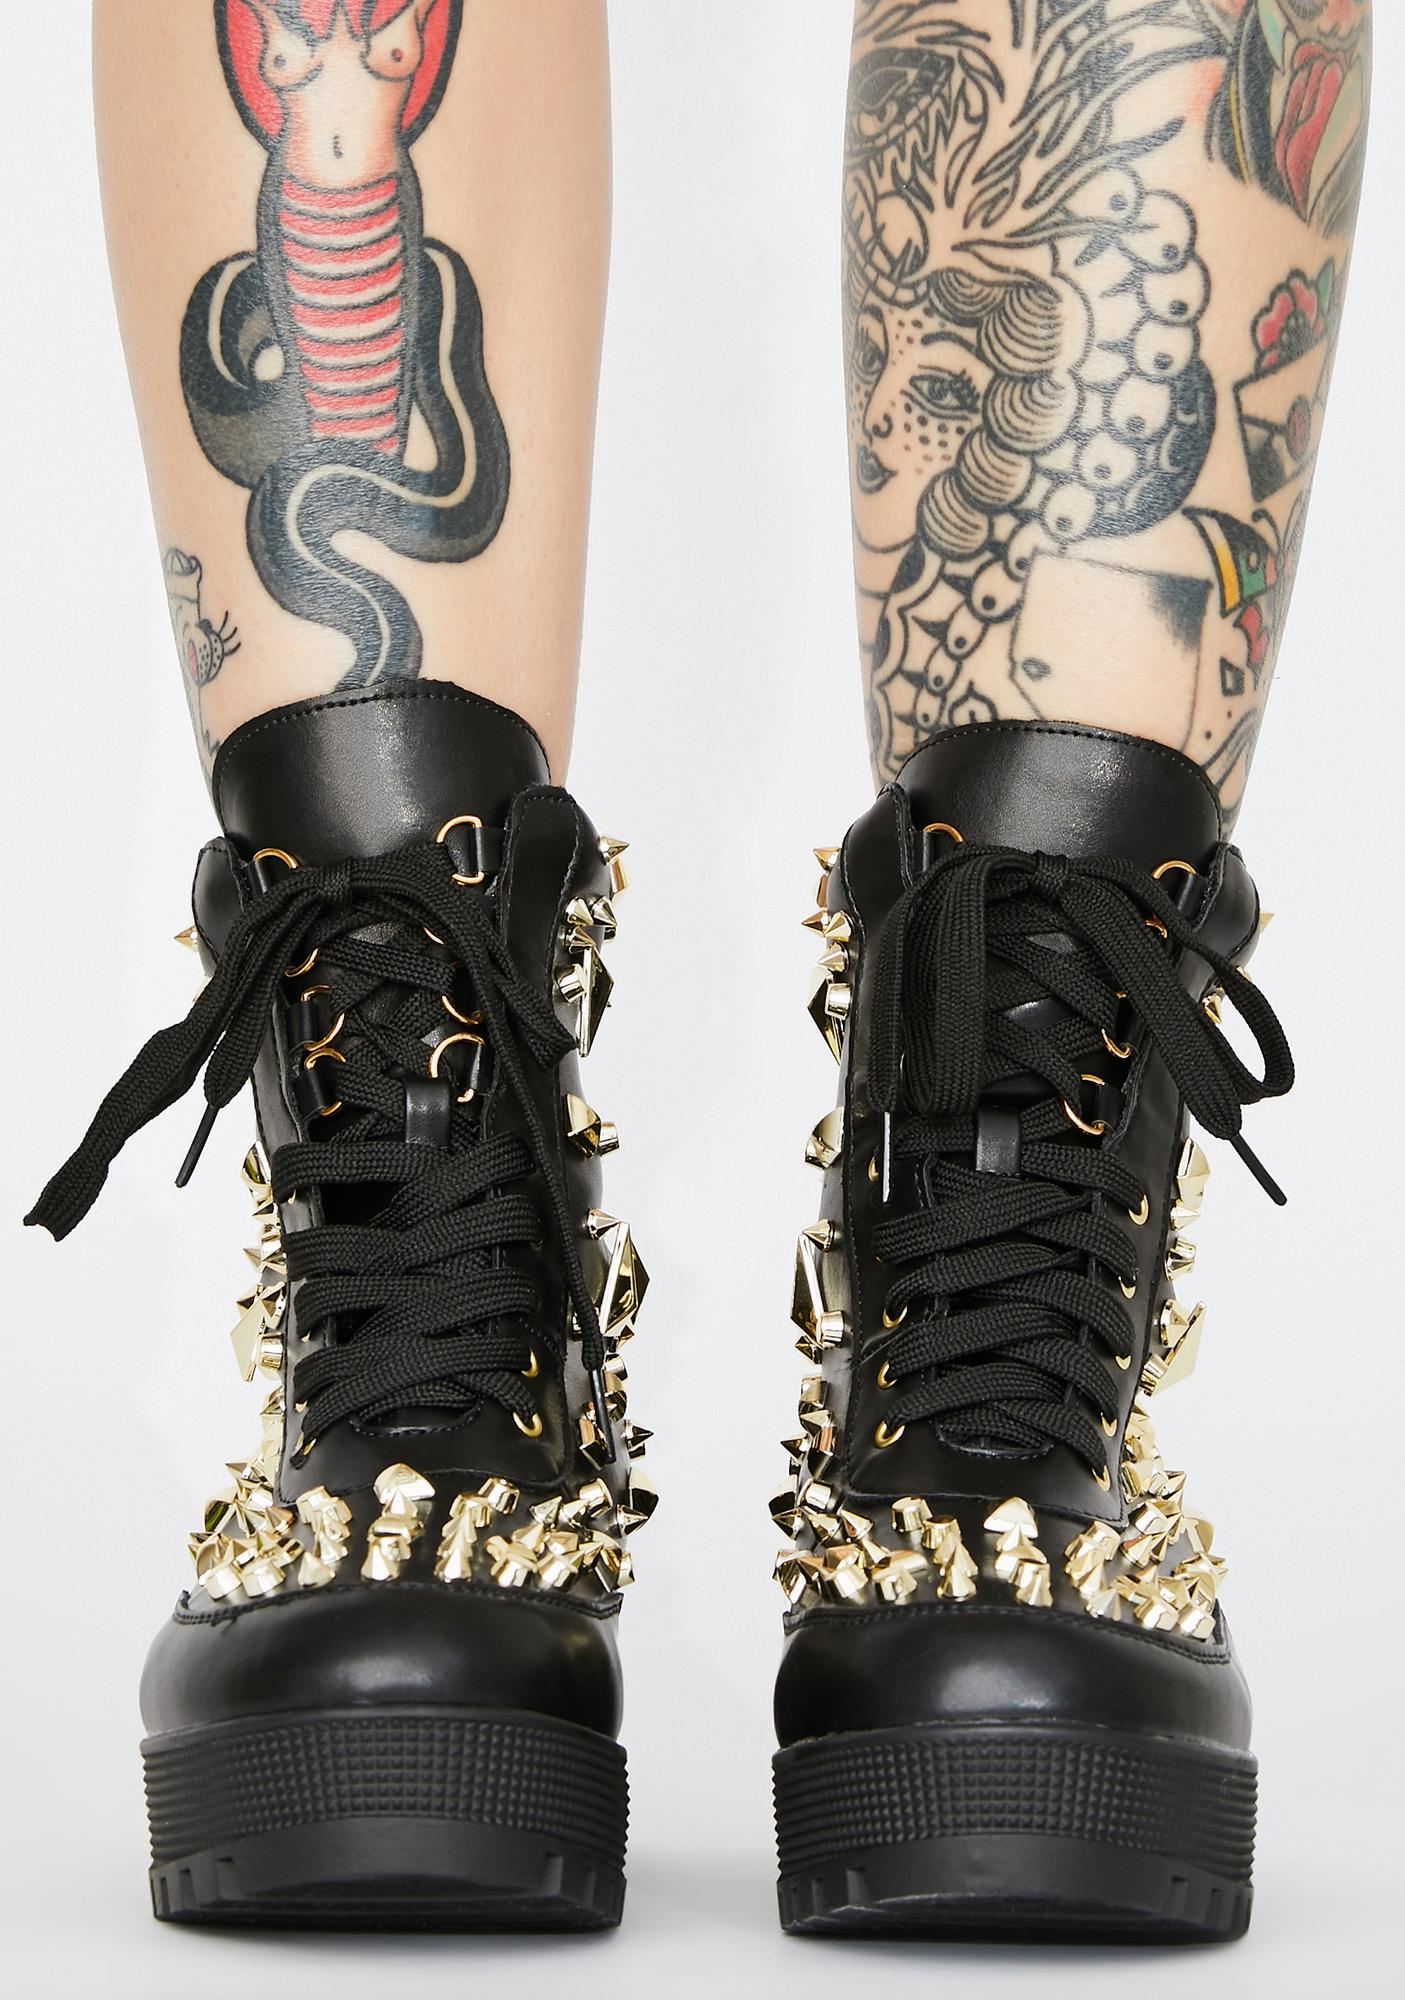 Impure Mind's Made Up Studded Boots